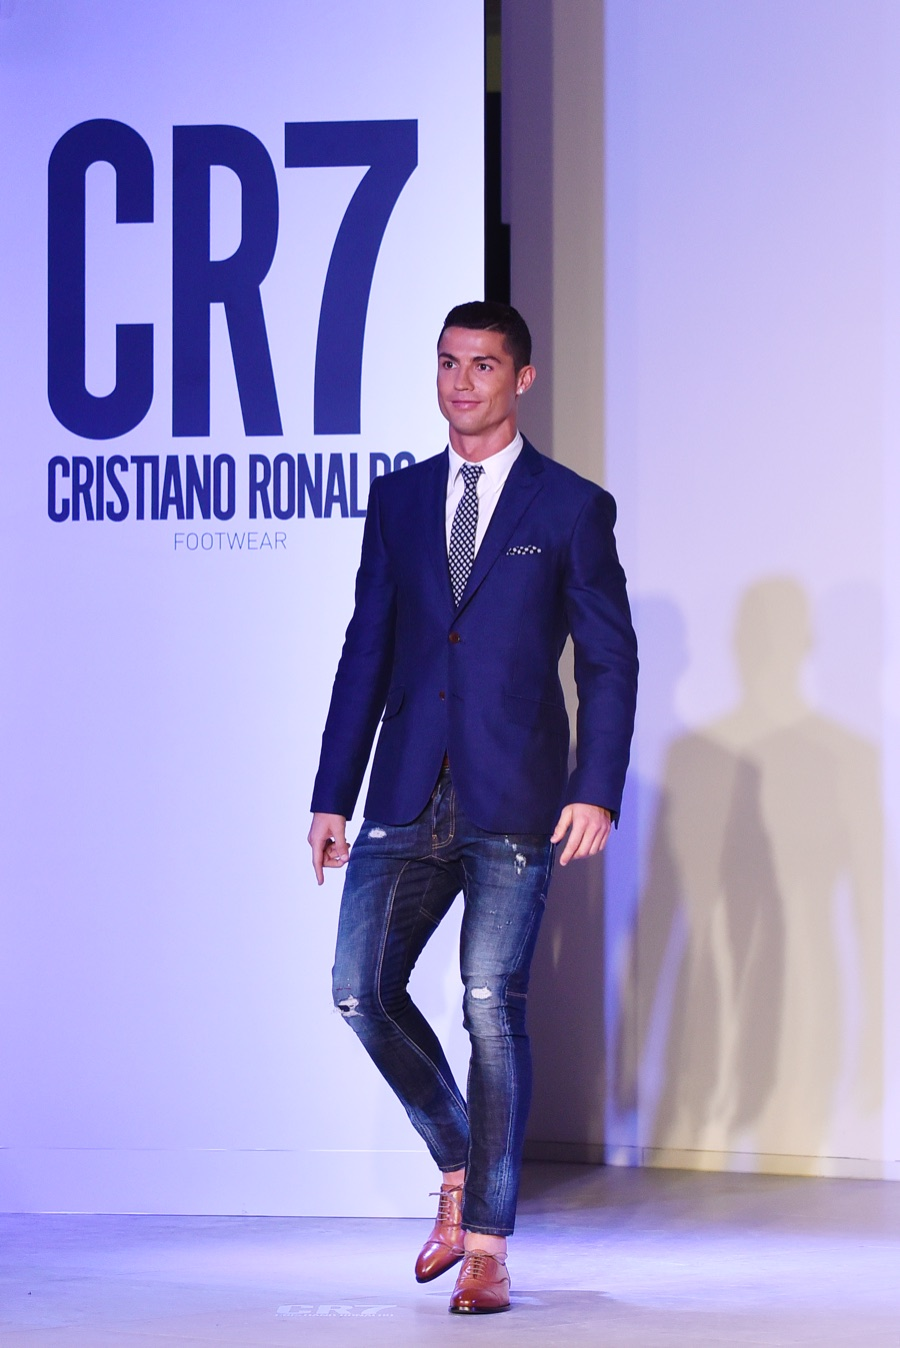 Cristiano-Ronaldo-CR7-Footwear-Fall-Winter-2015-Runway-Show-Pictures-008